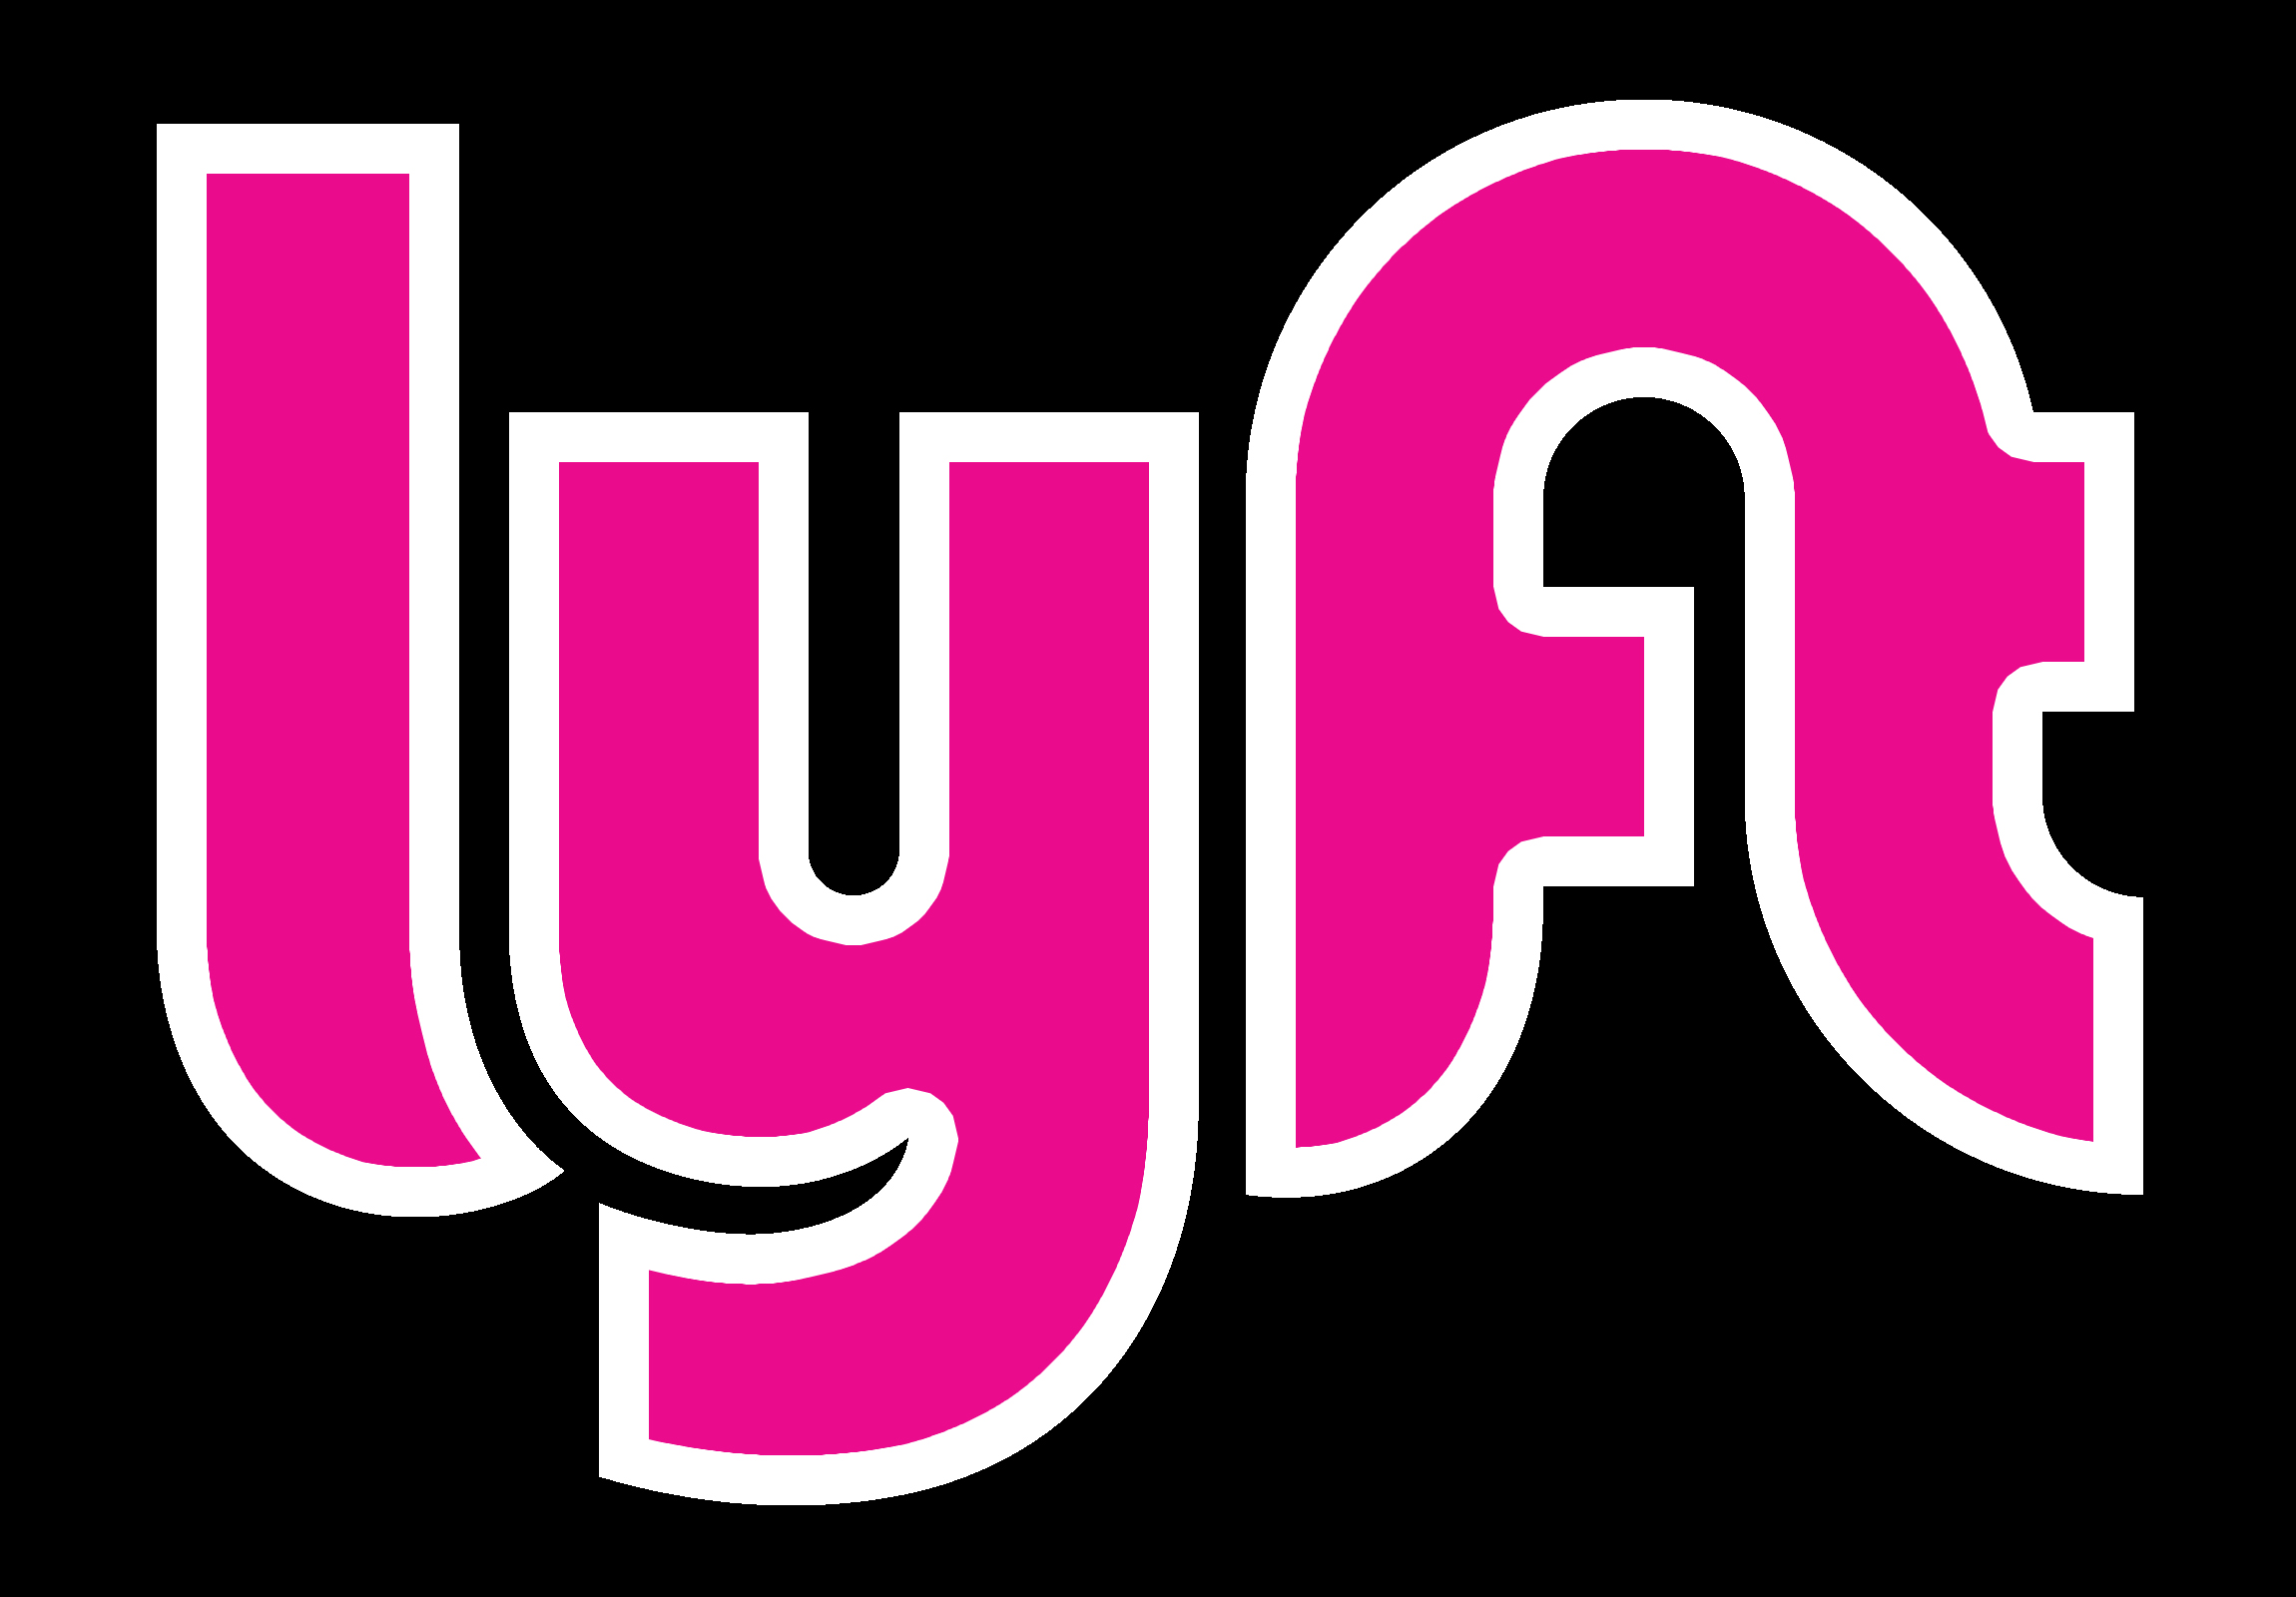 photograph regarding Lyft Printable Logo identified as This means Lyft brand and logo background and evolution